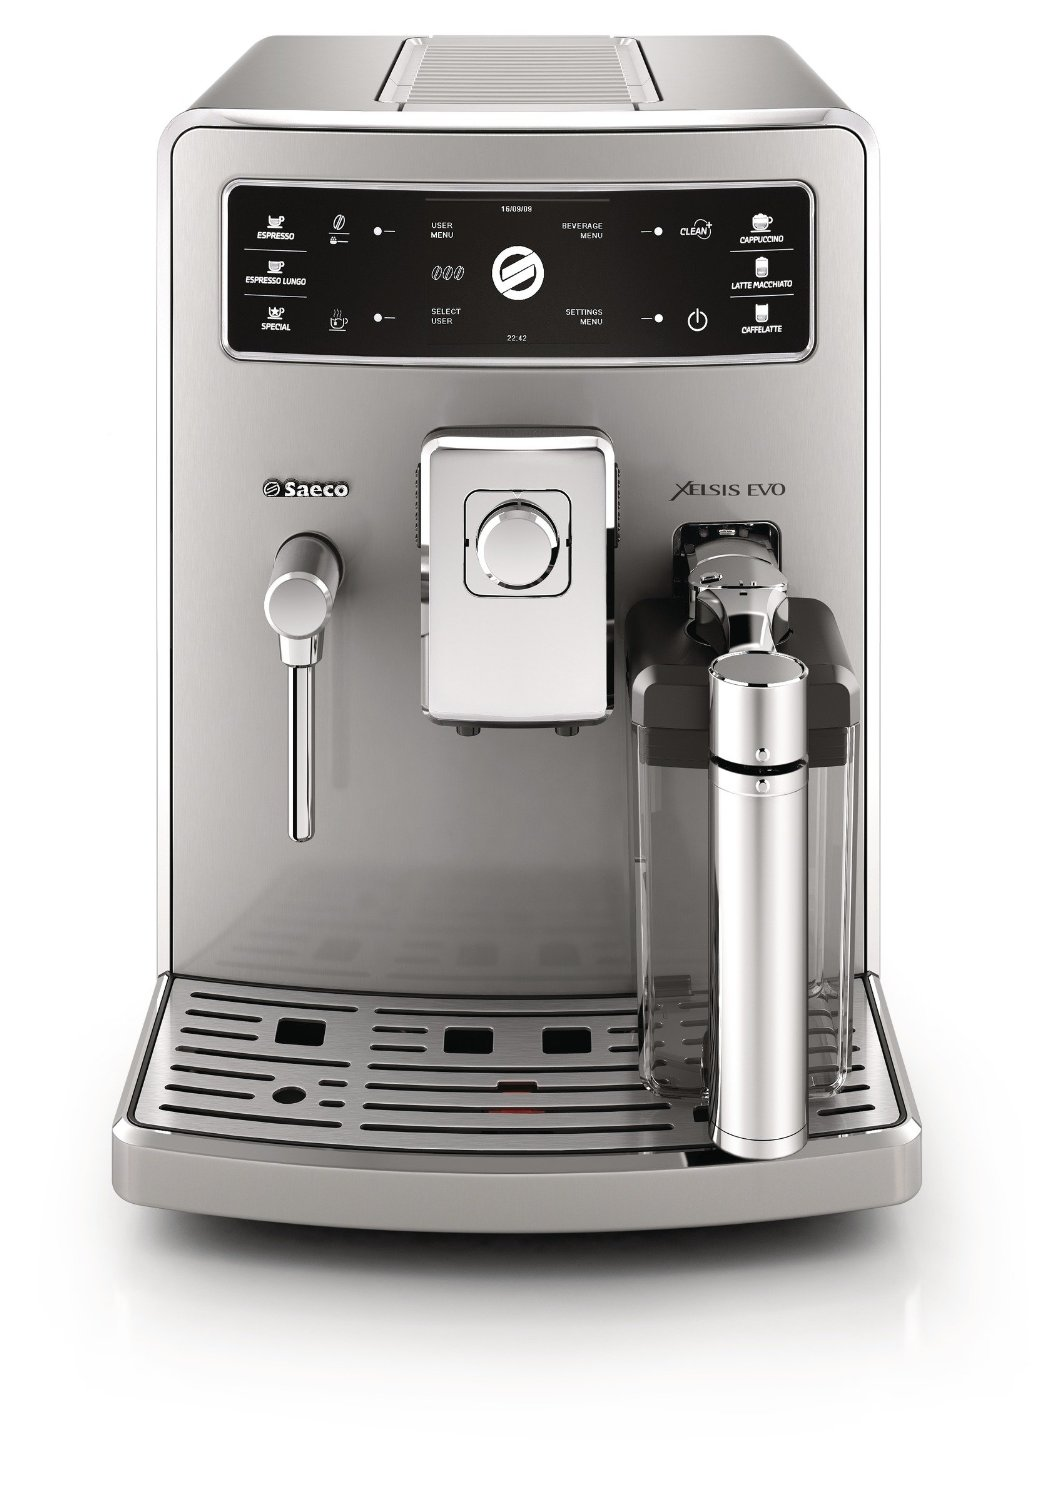 saeco hd895447 philips xelsis evo fully automatic espresso machine view on amazon